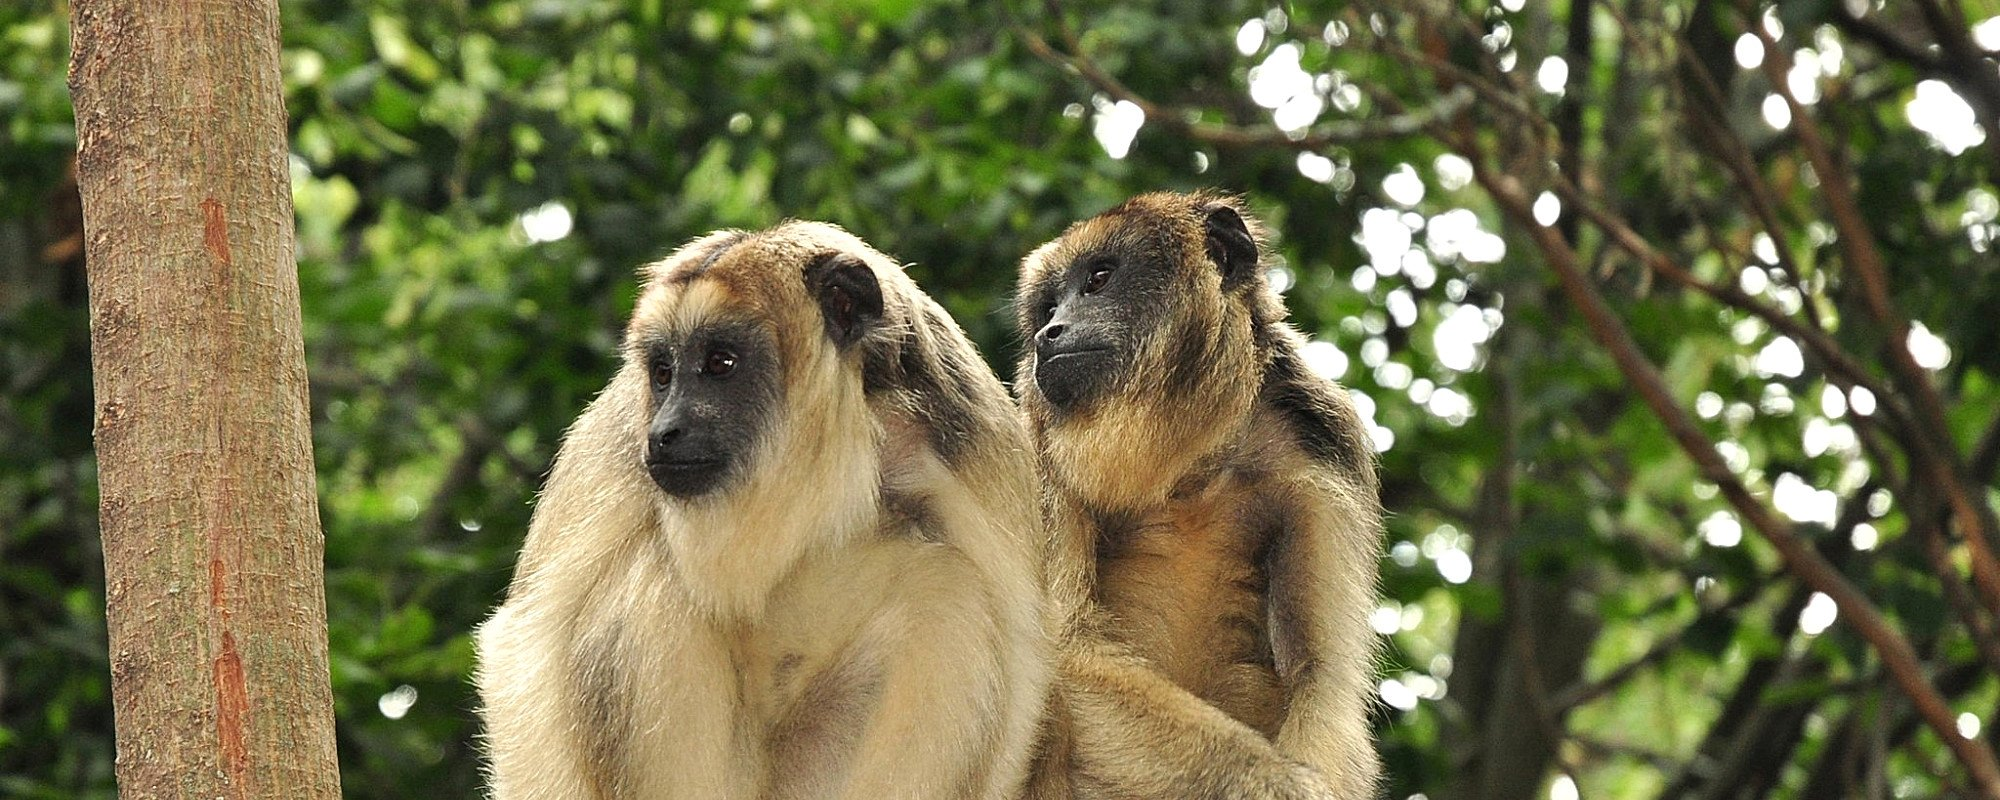 Monkeys rescued in South America